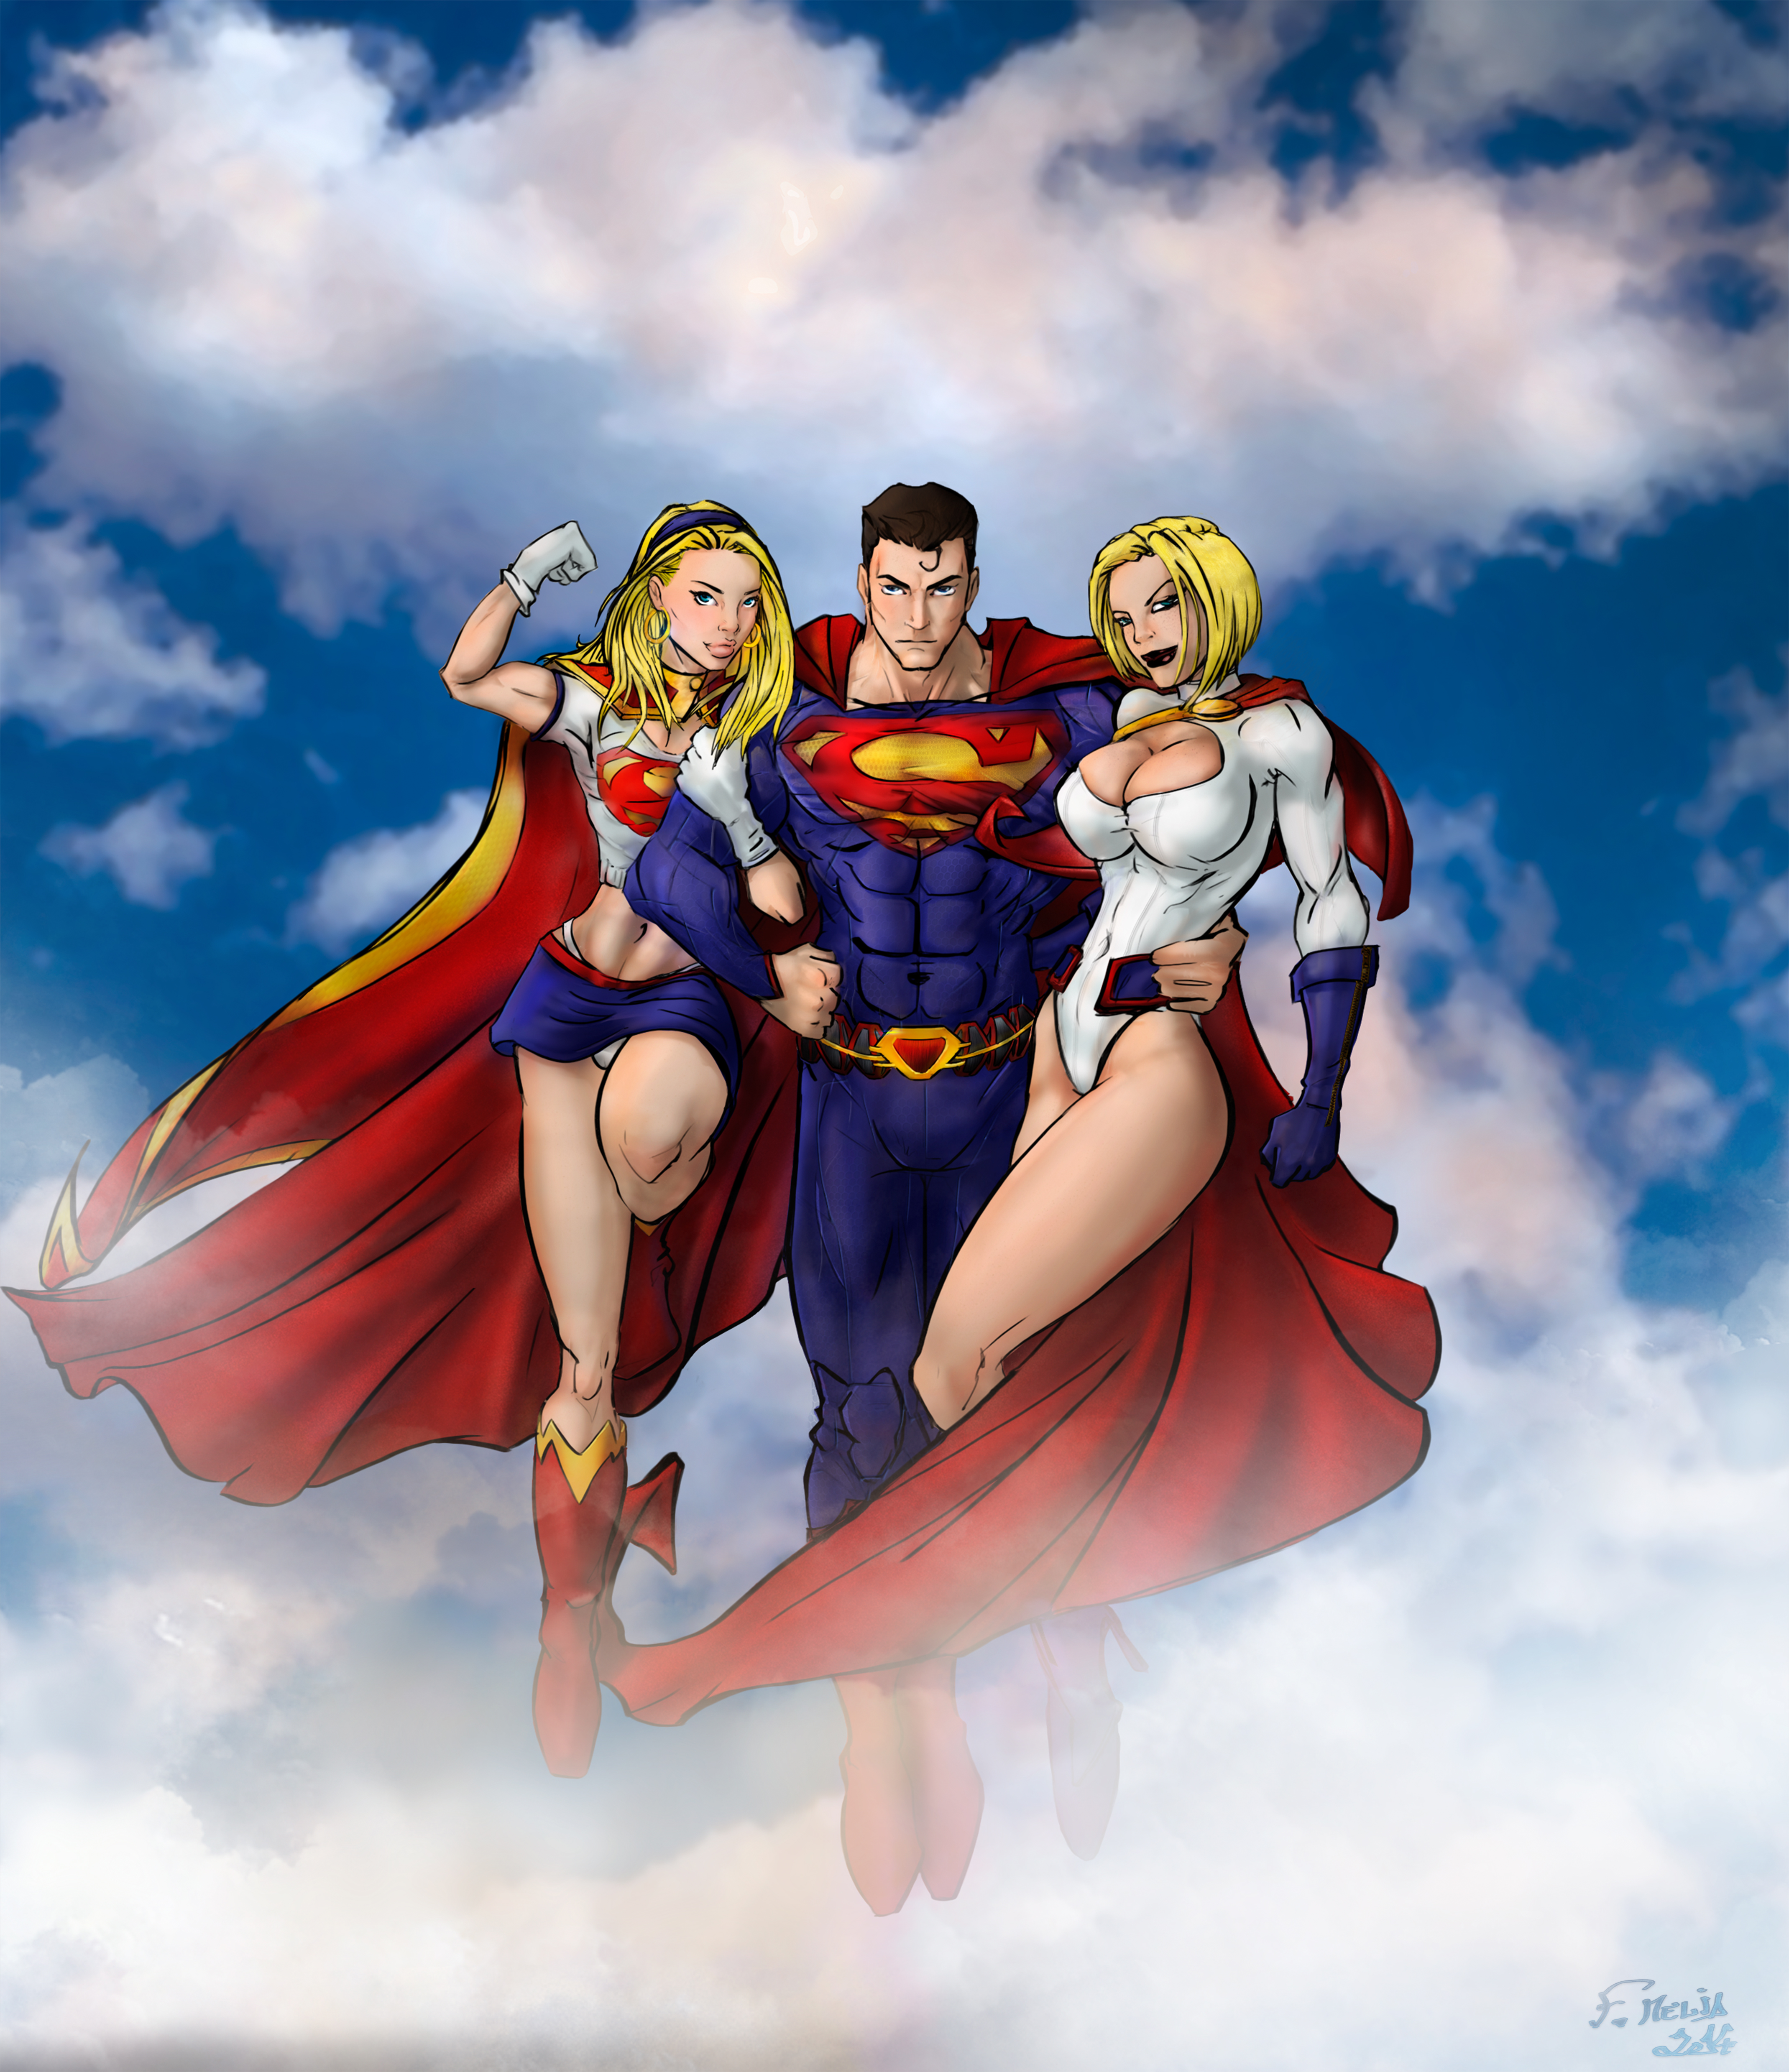 Naked super hero girls banged